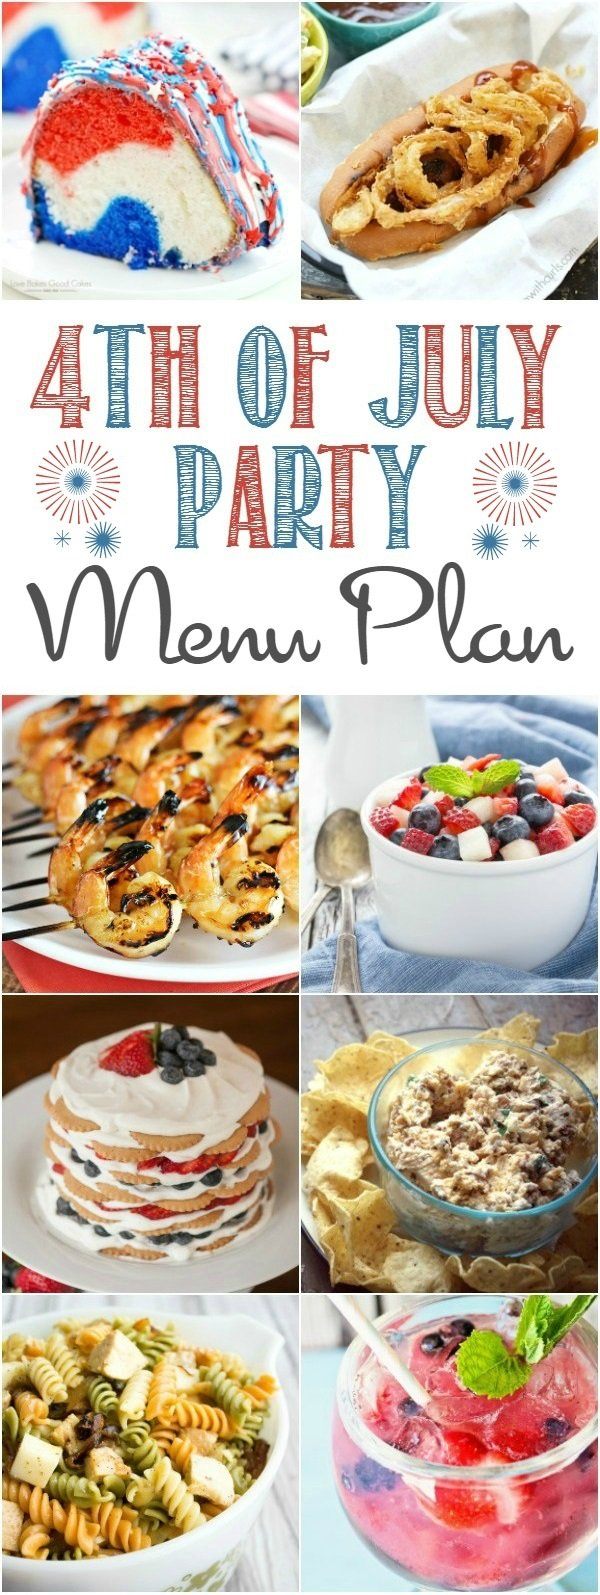 We're making planning a patriotic party is super easy with this 4th of July menu plan.